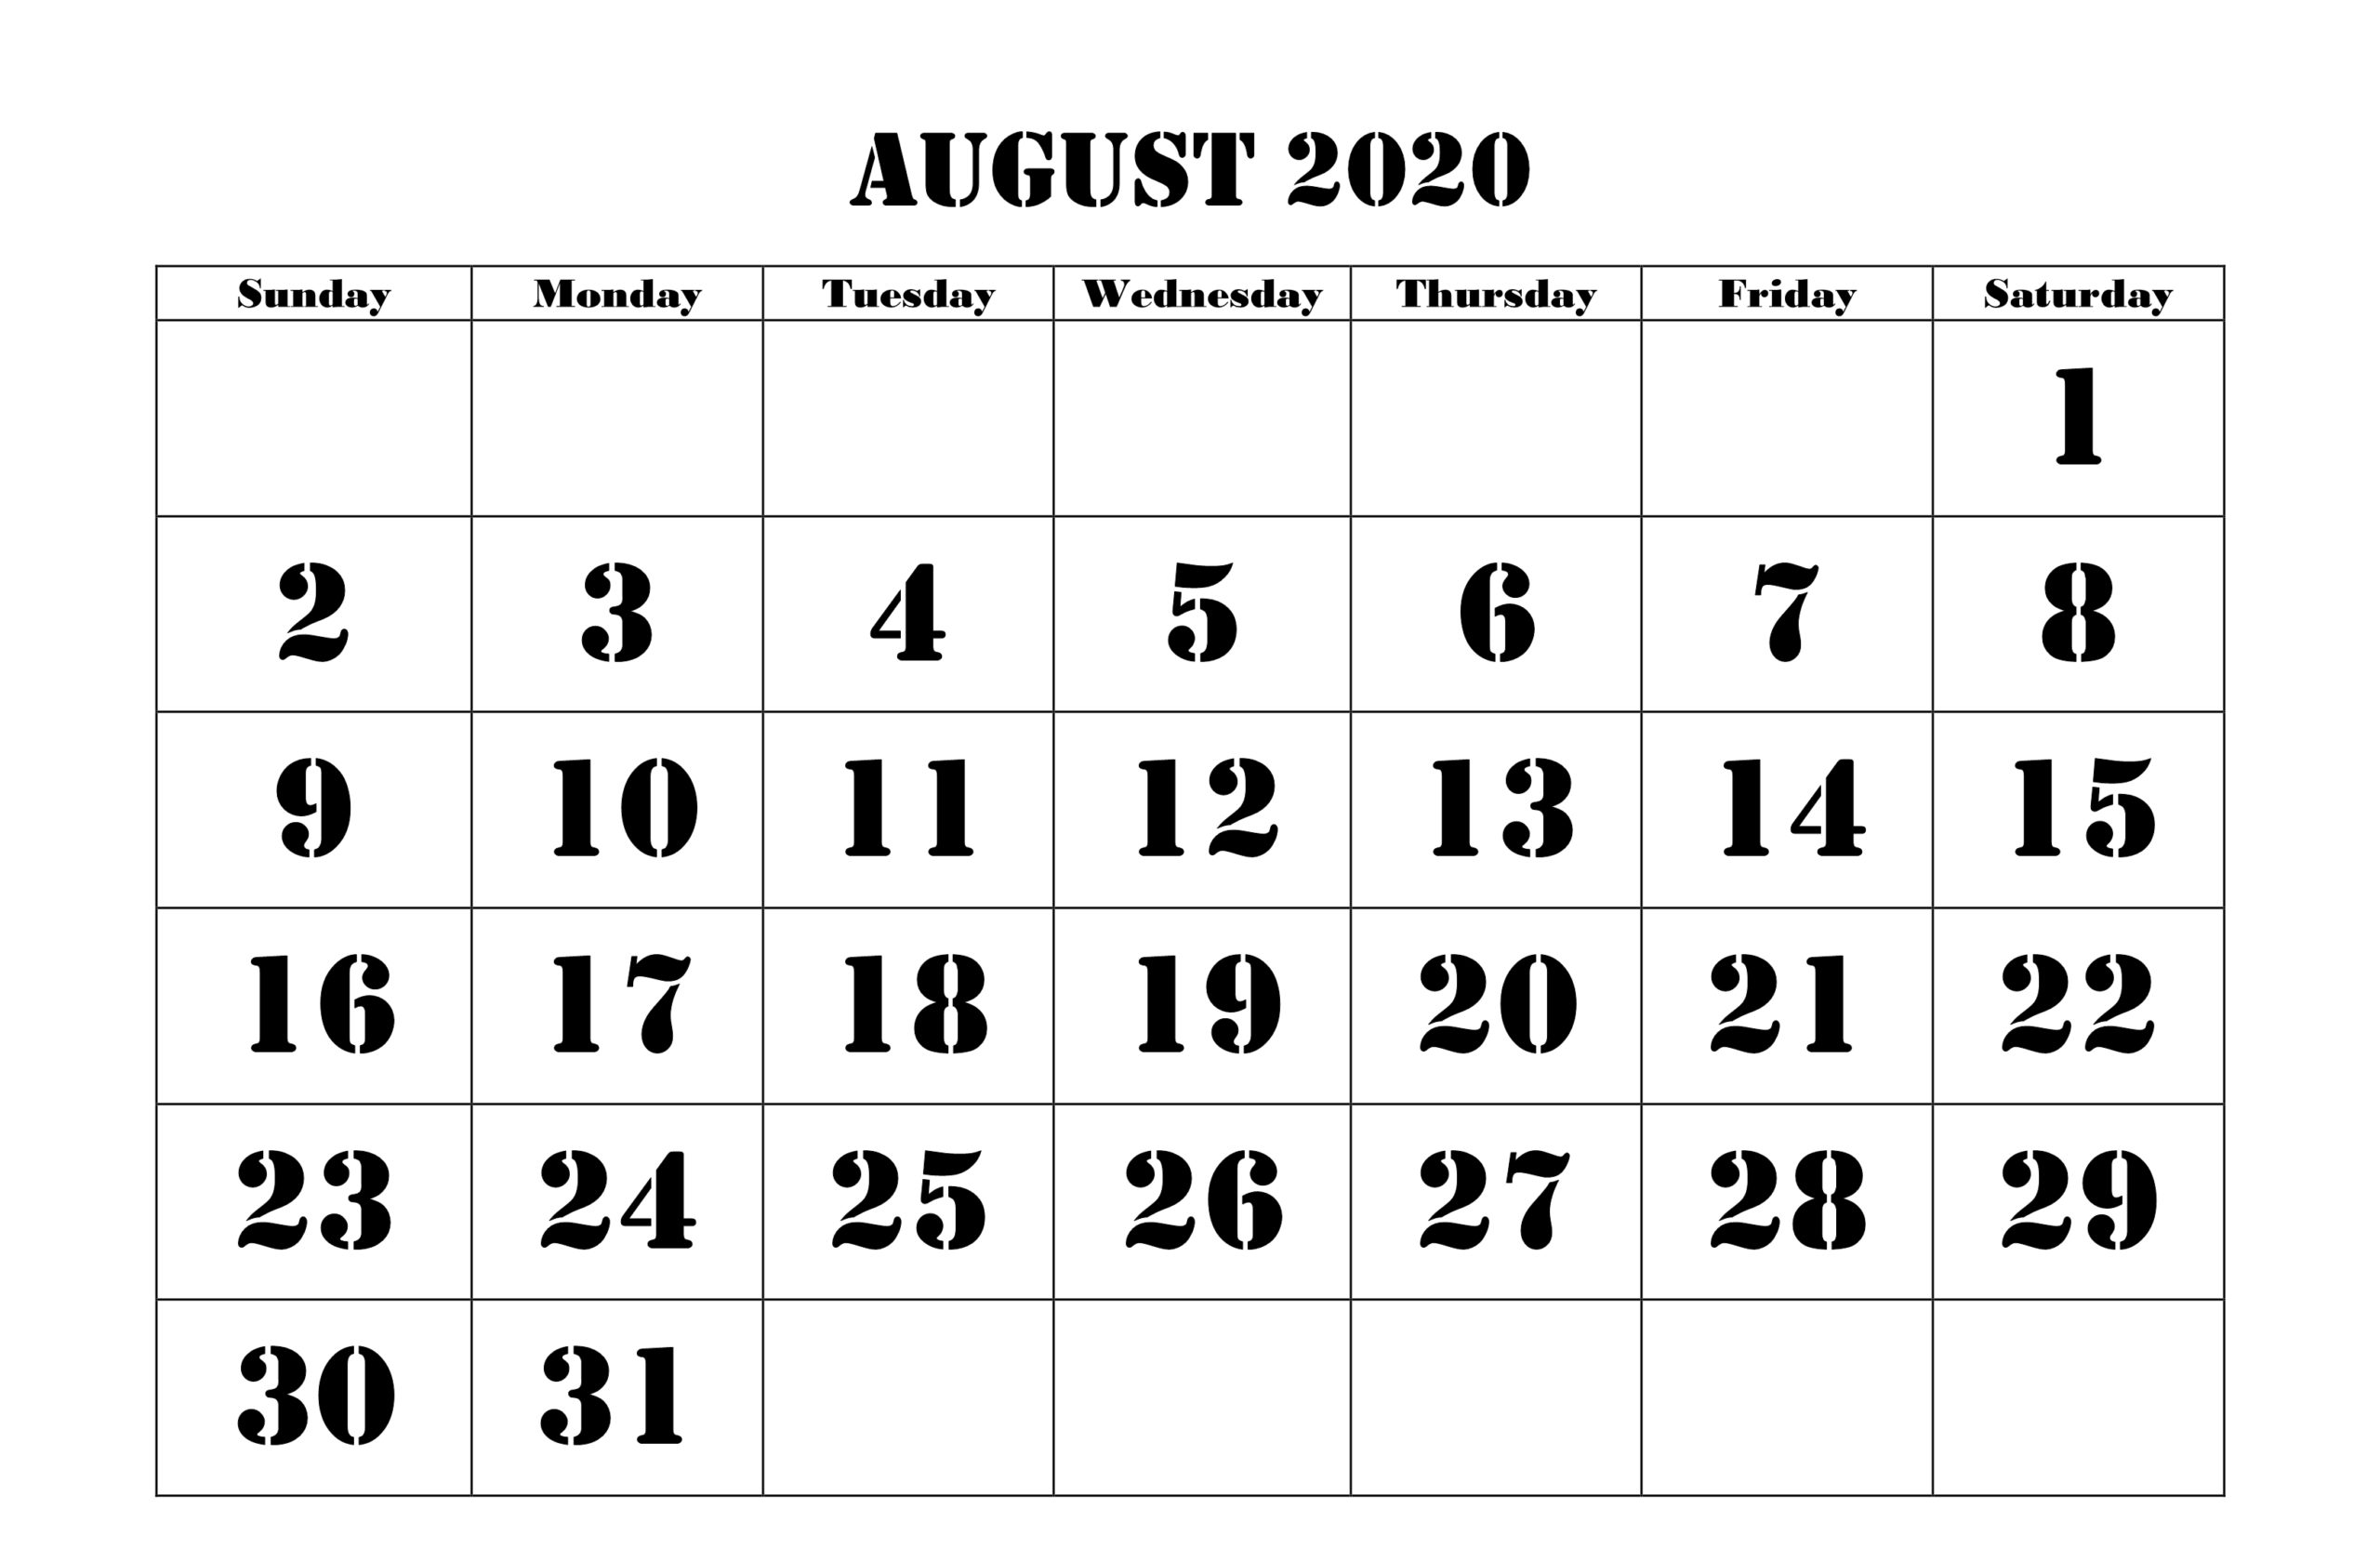 August 2020 Calendar with India